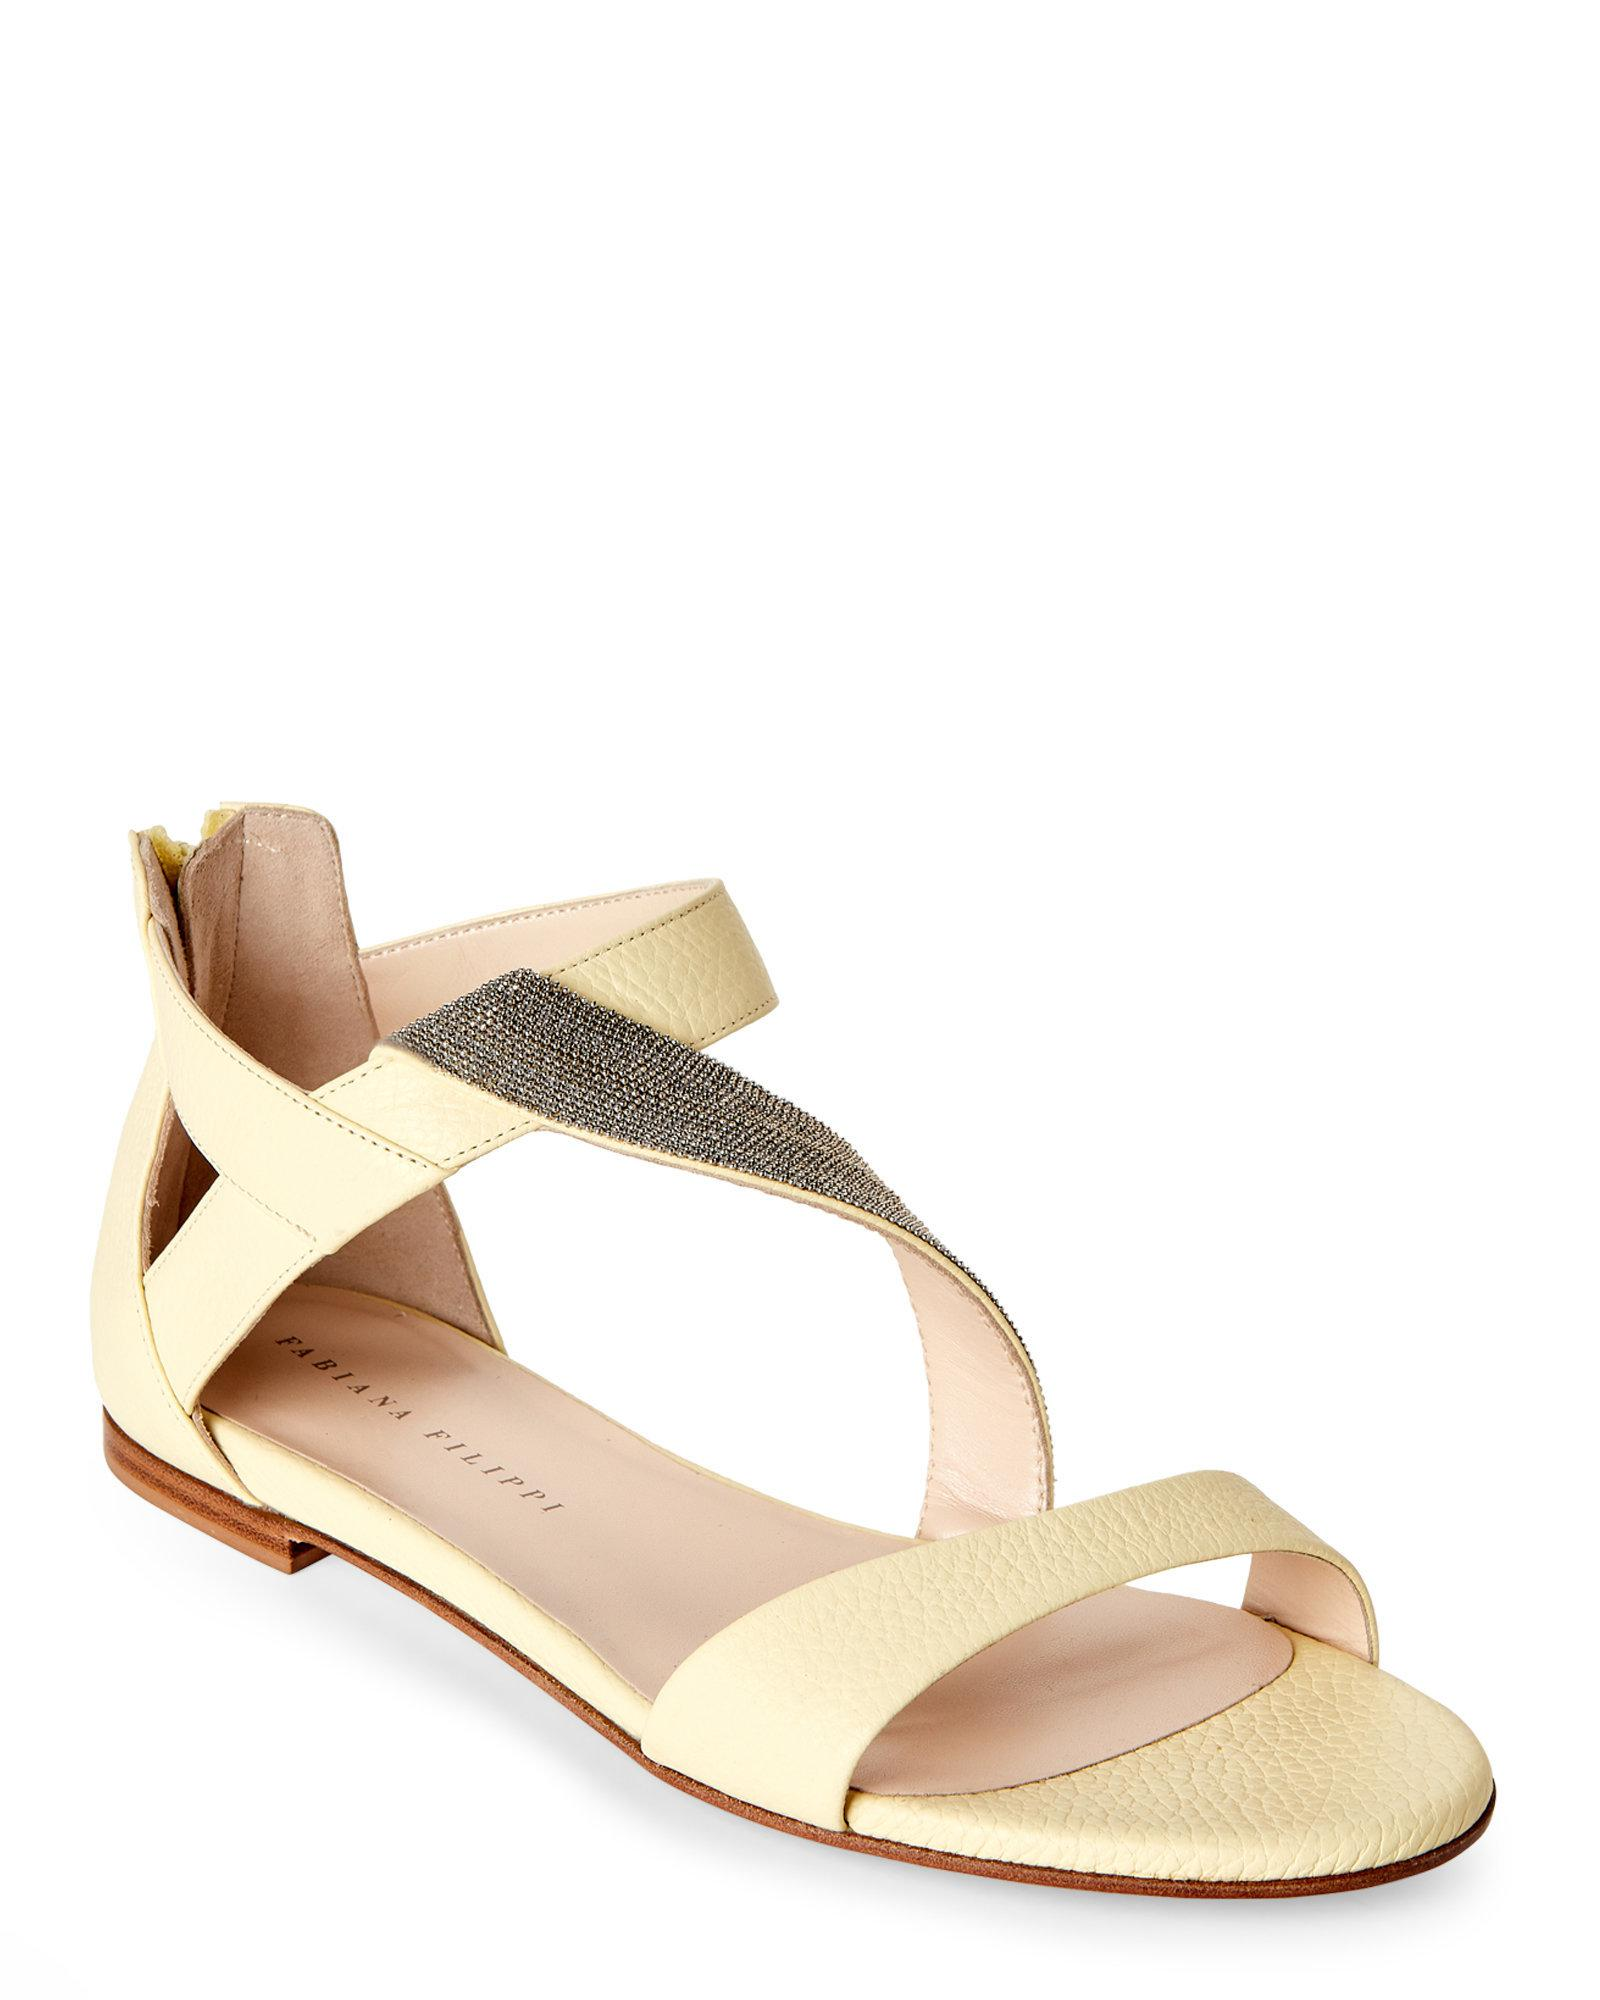 fashion Style sale online Fabiana Filippi Leather Embellished Sandals outlet very cheap free shipping footlocker pictures discount order buy cheap with mastercard 8nsDUG